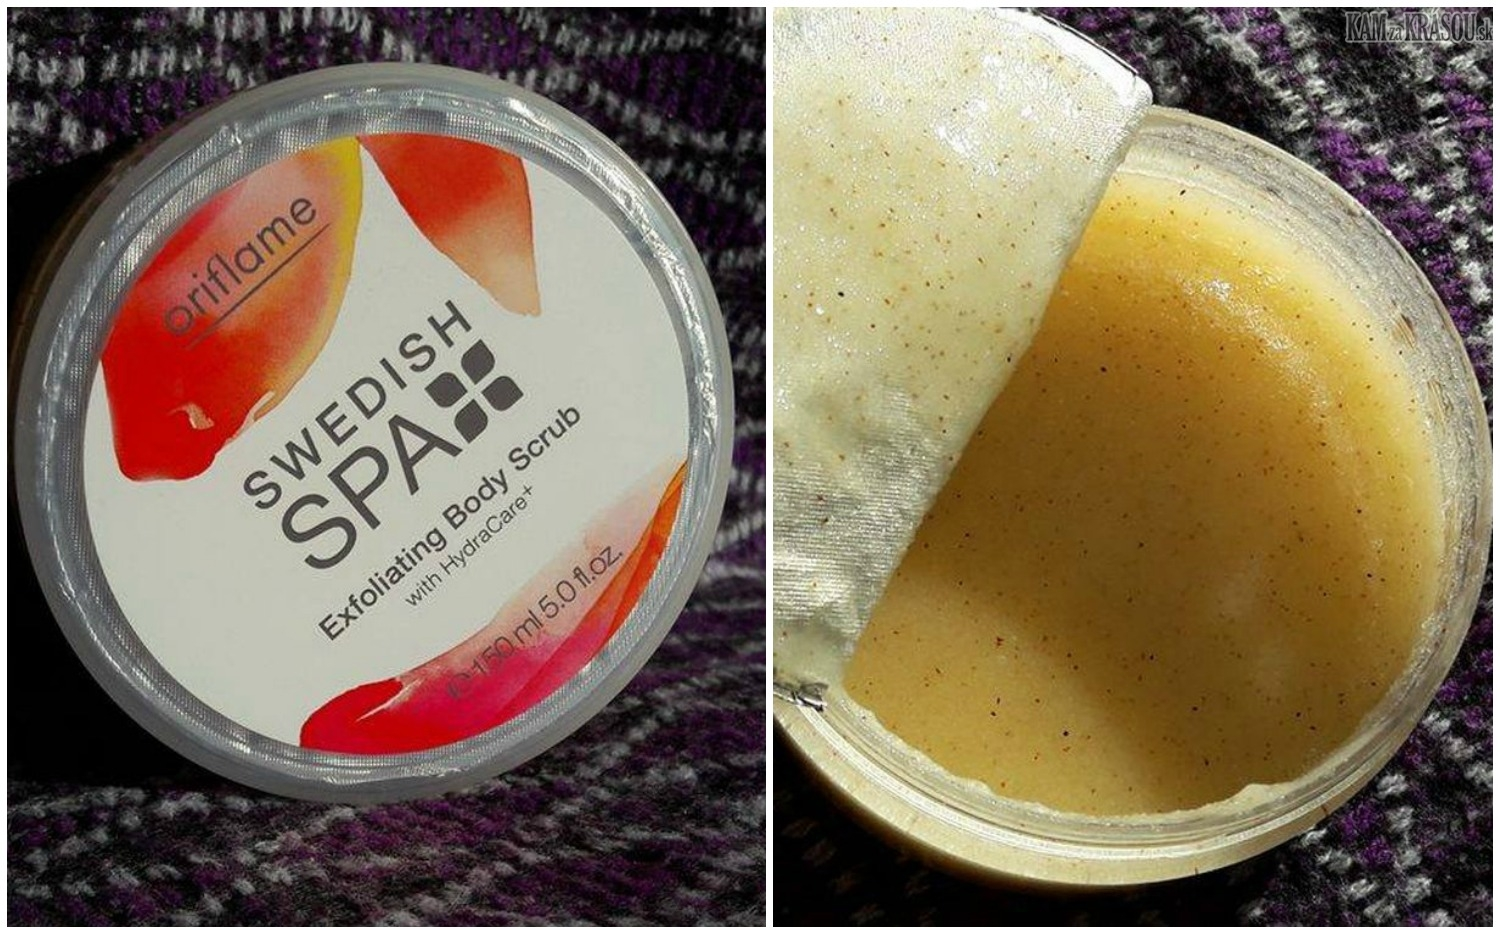 Oriflame Swedish Spa Exfoliating Body Scrub